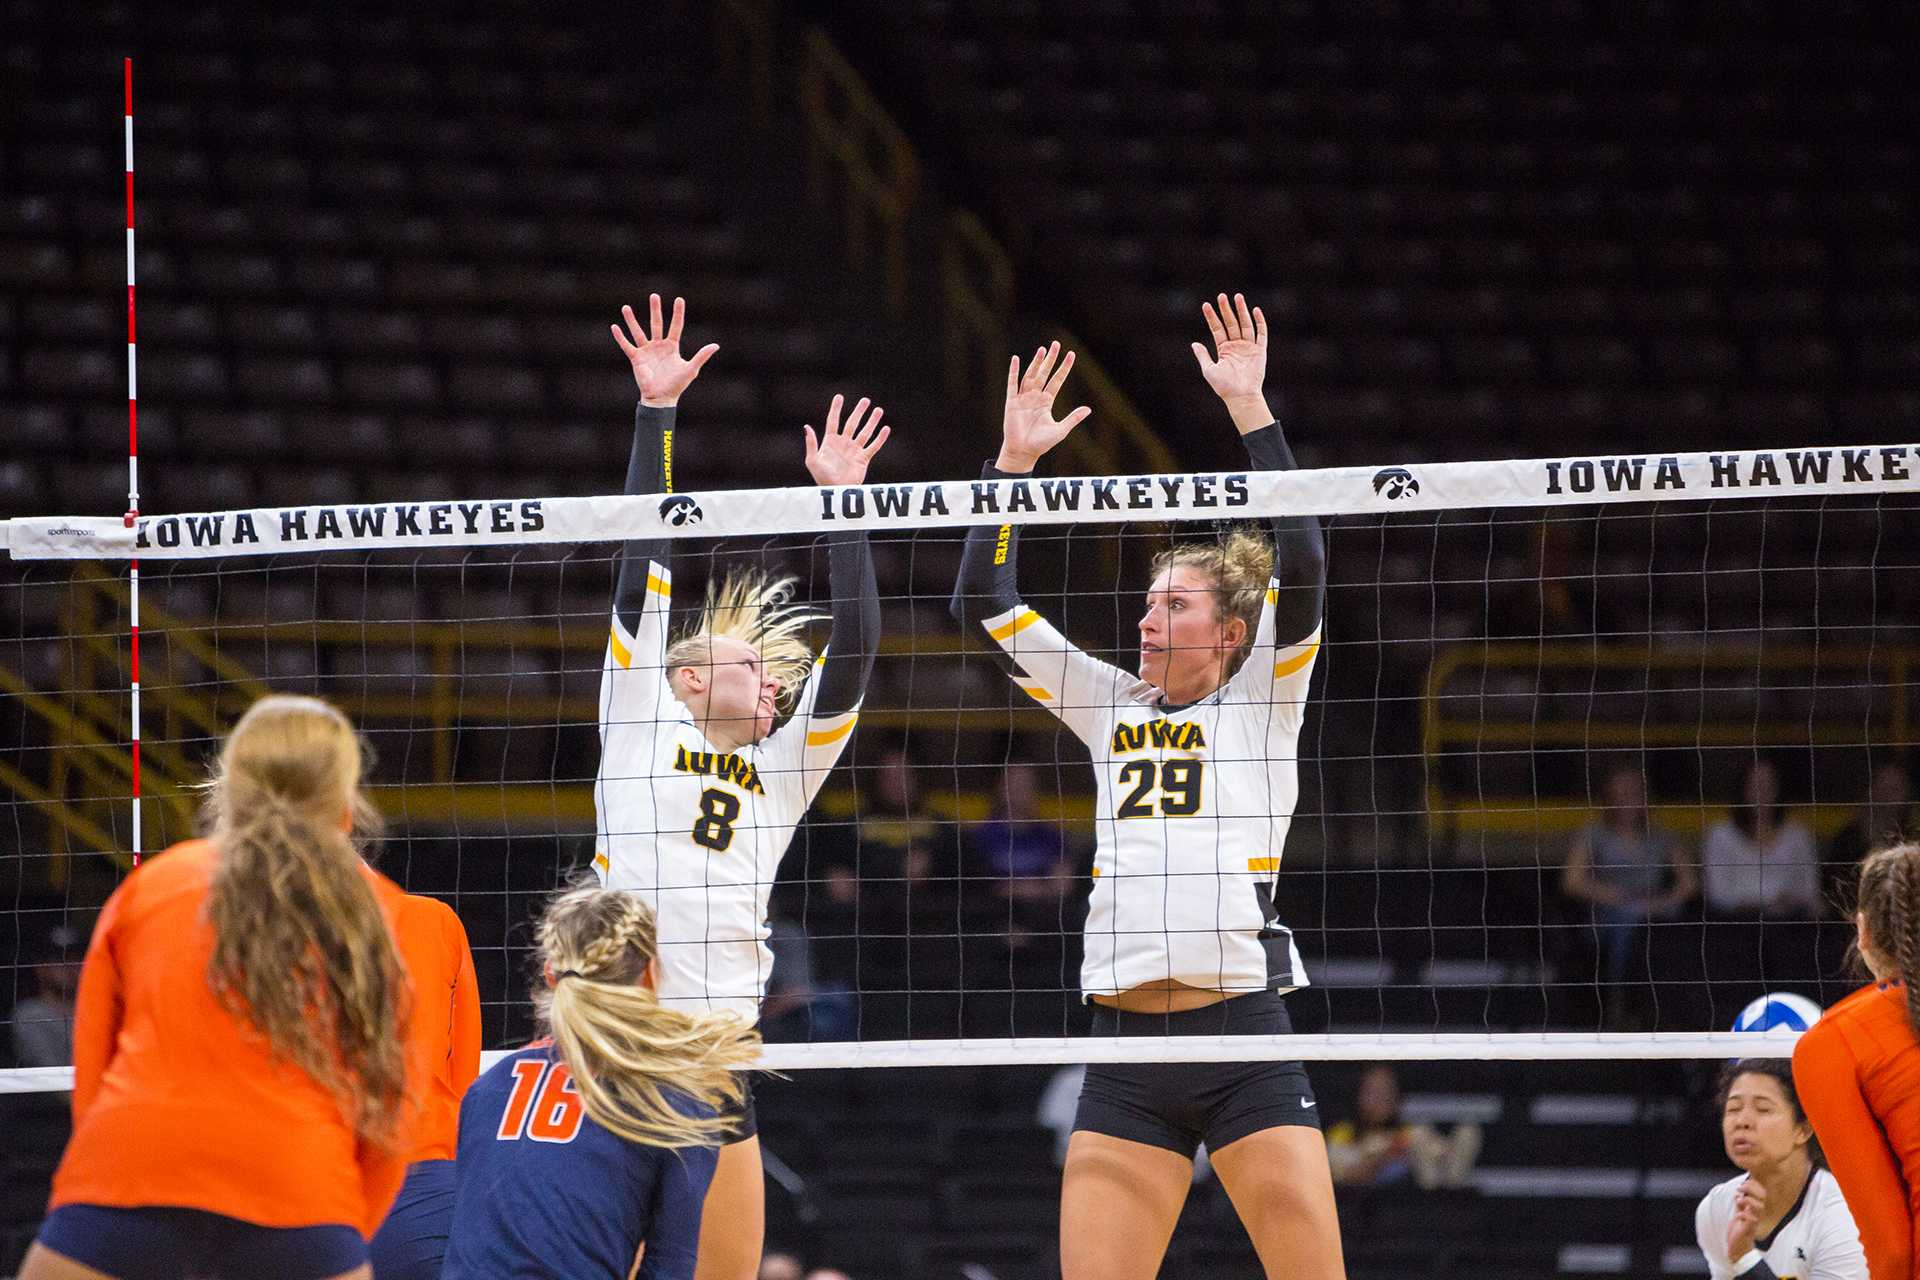 Iowa volleyball prepares for first battle of new season